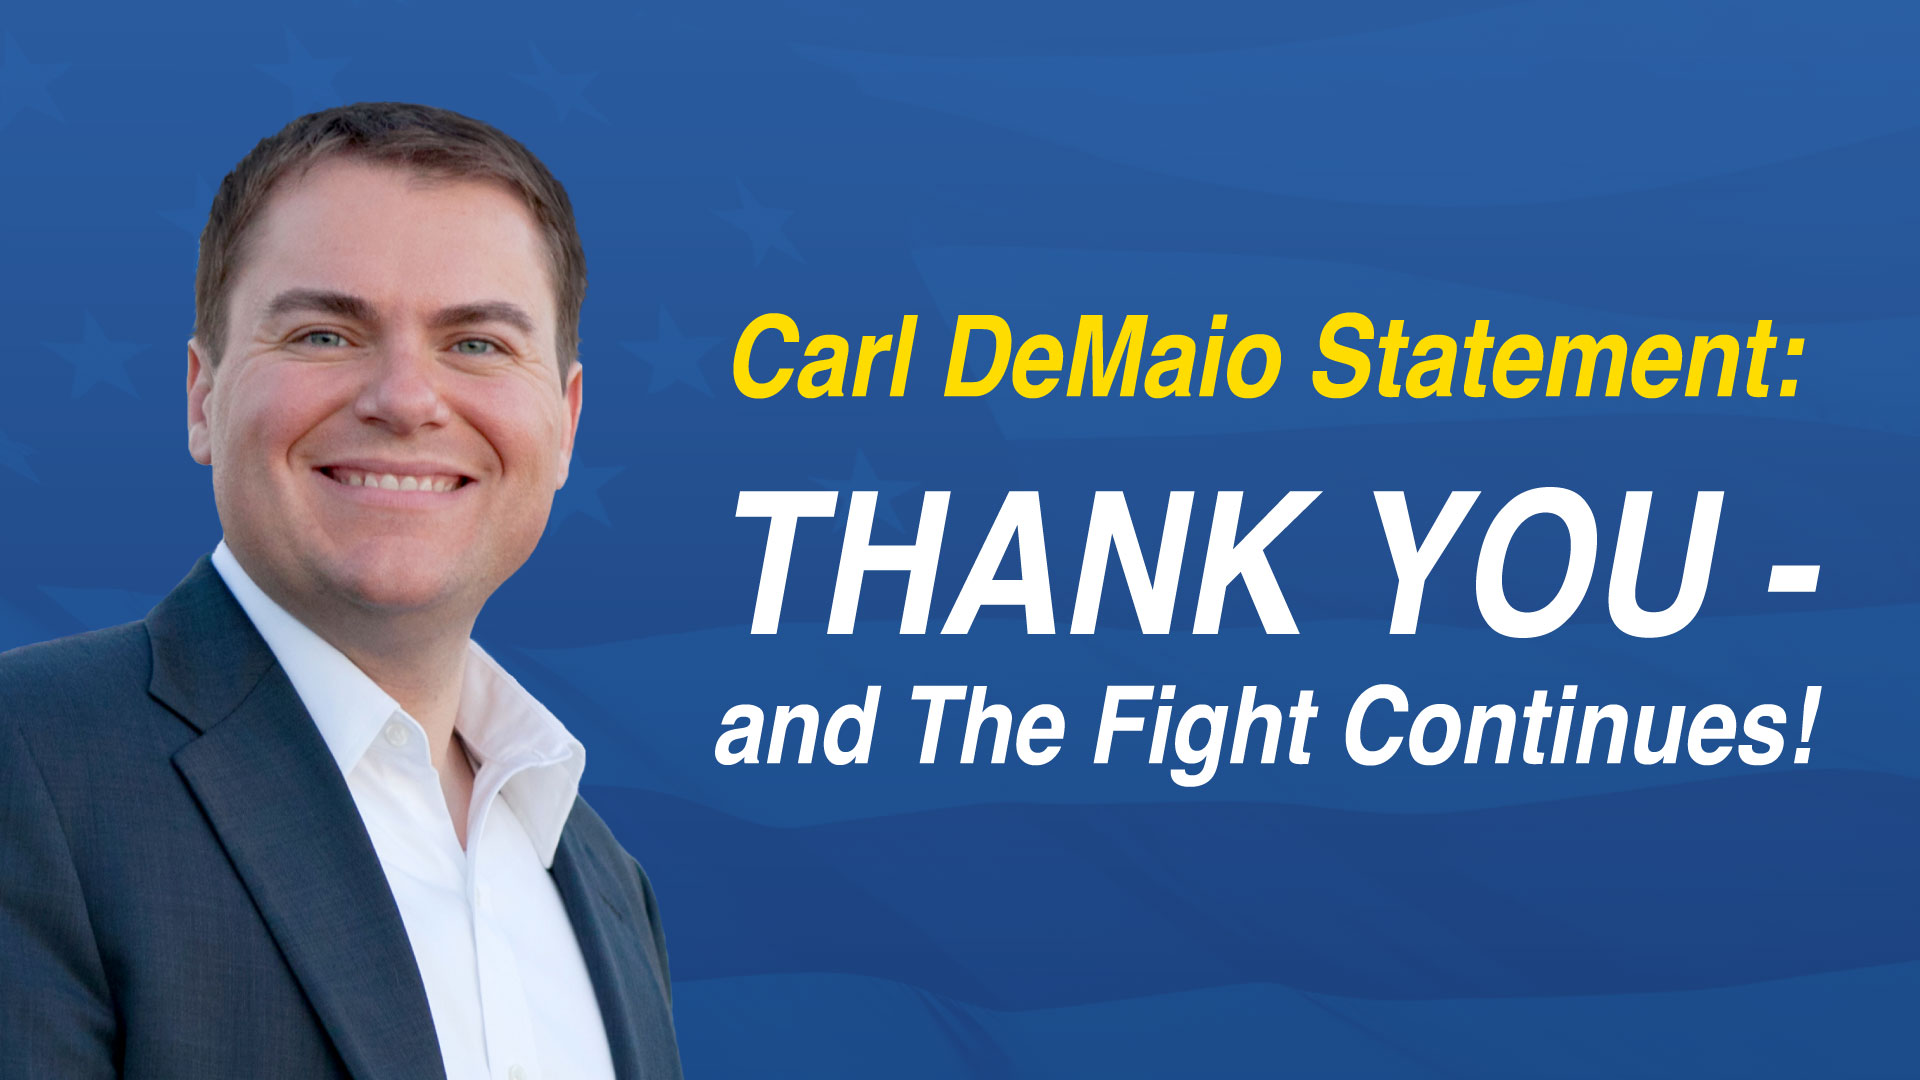 Carl DeMaio Returns as Chairman of Reform California